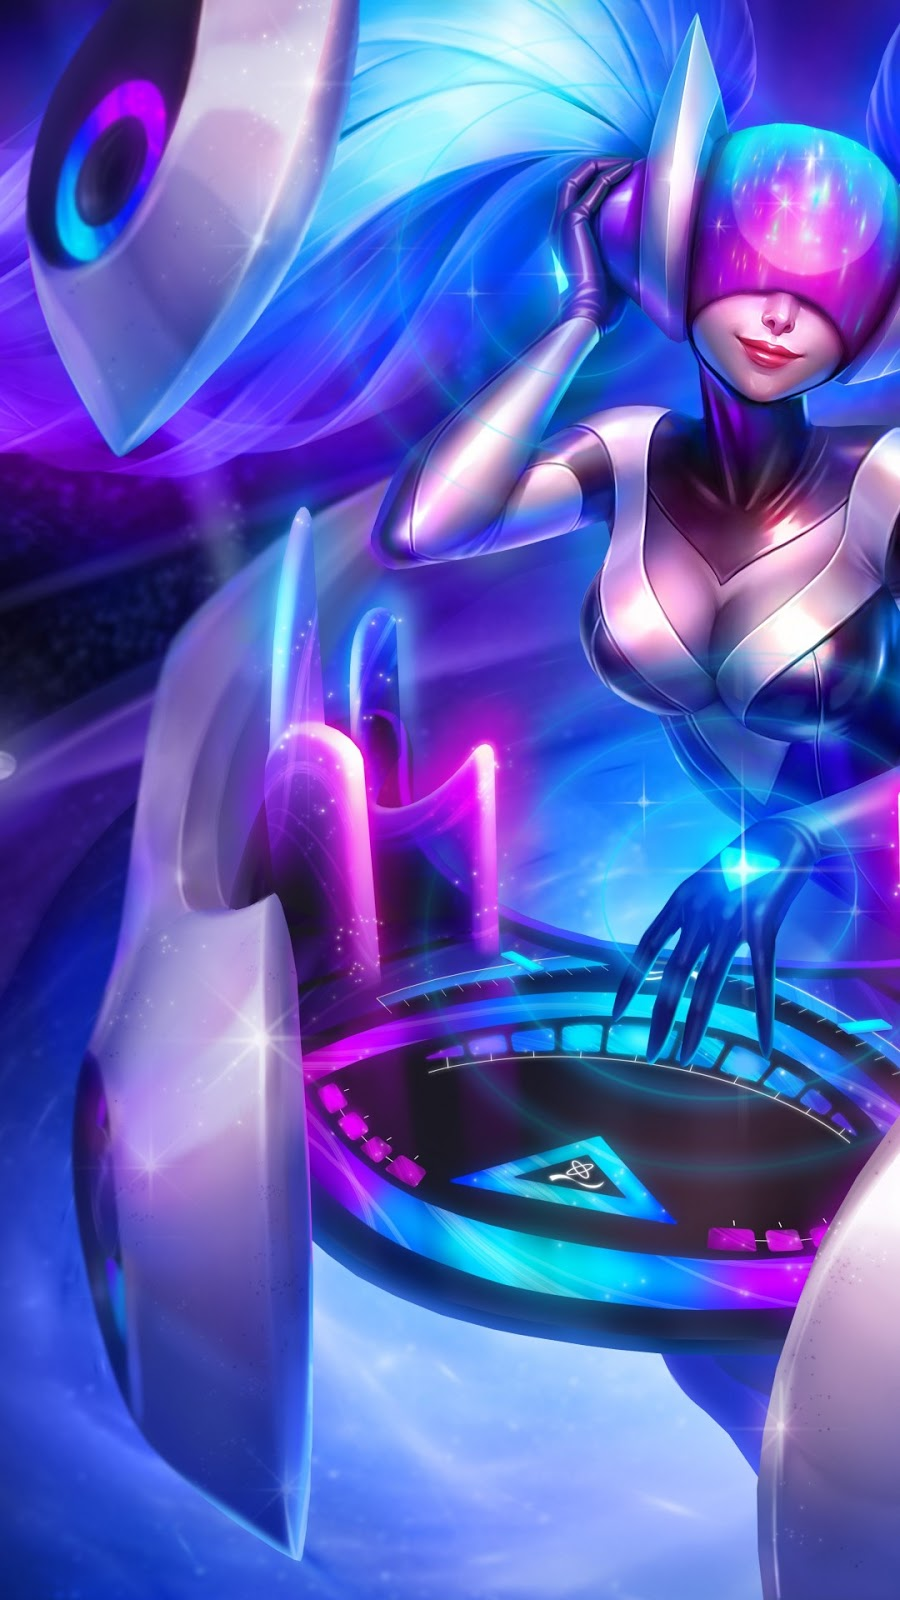 Papel de parede grátis DJ Sona League of Legends para PC, Notebook, iPhone, Android e Tablet.